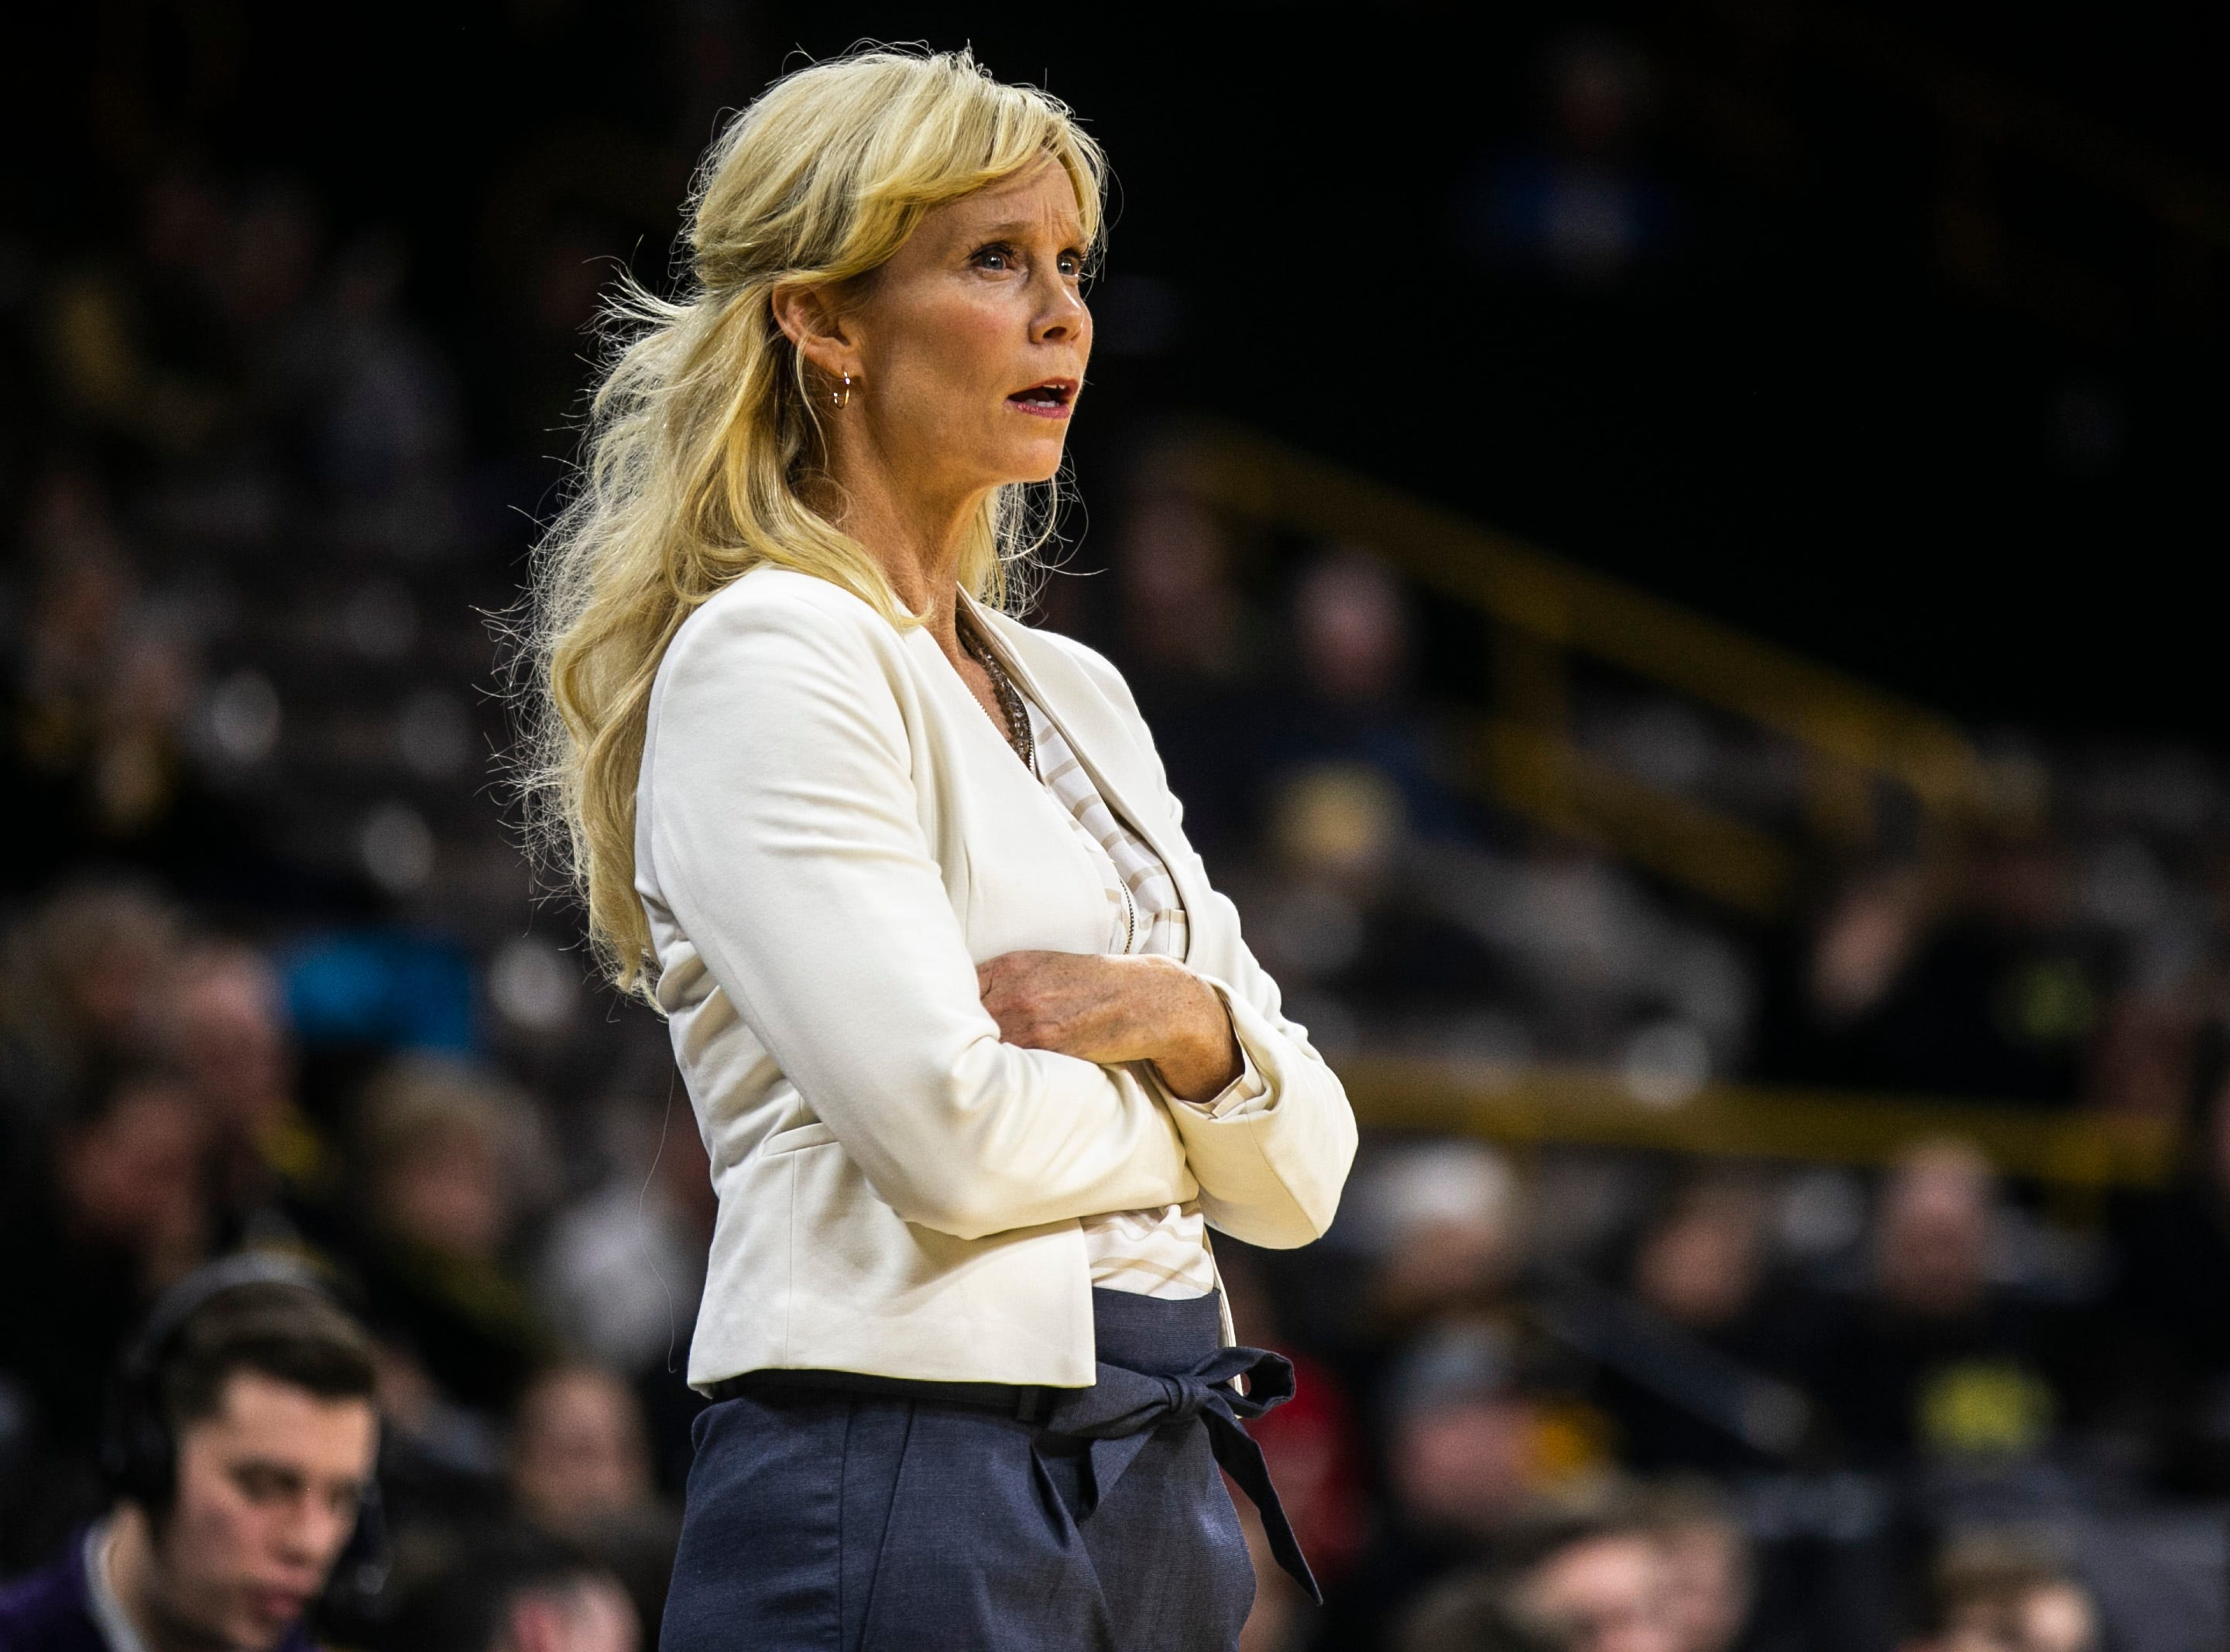 Michigan State head coach Suzy Merchant reacts to a call during a NCAA Big Ten Conference women's basketball game on Thursday, Feb. 7, 2019 at Carver-Hawkeye Arena in Iowa City, Iowa.